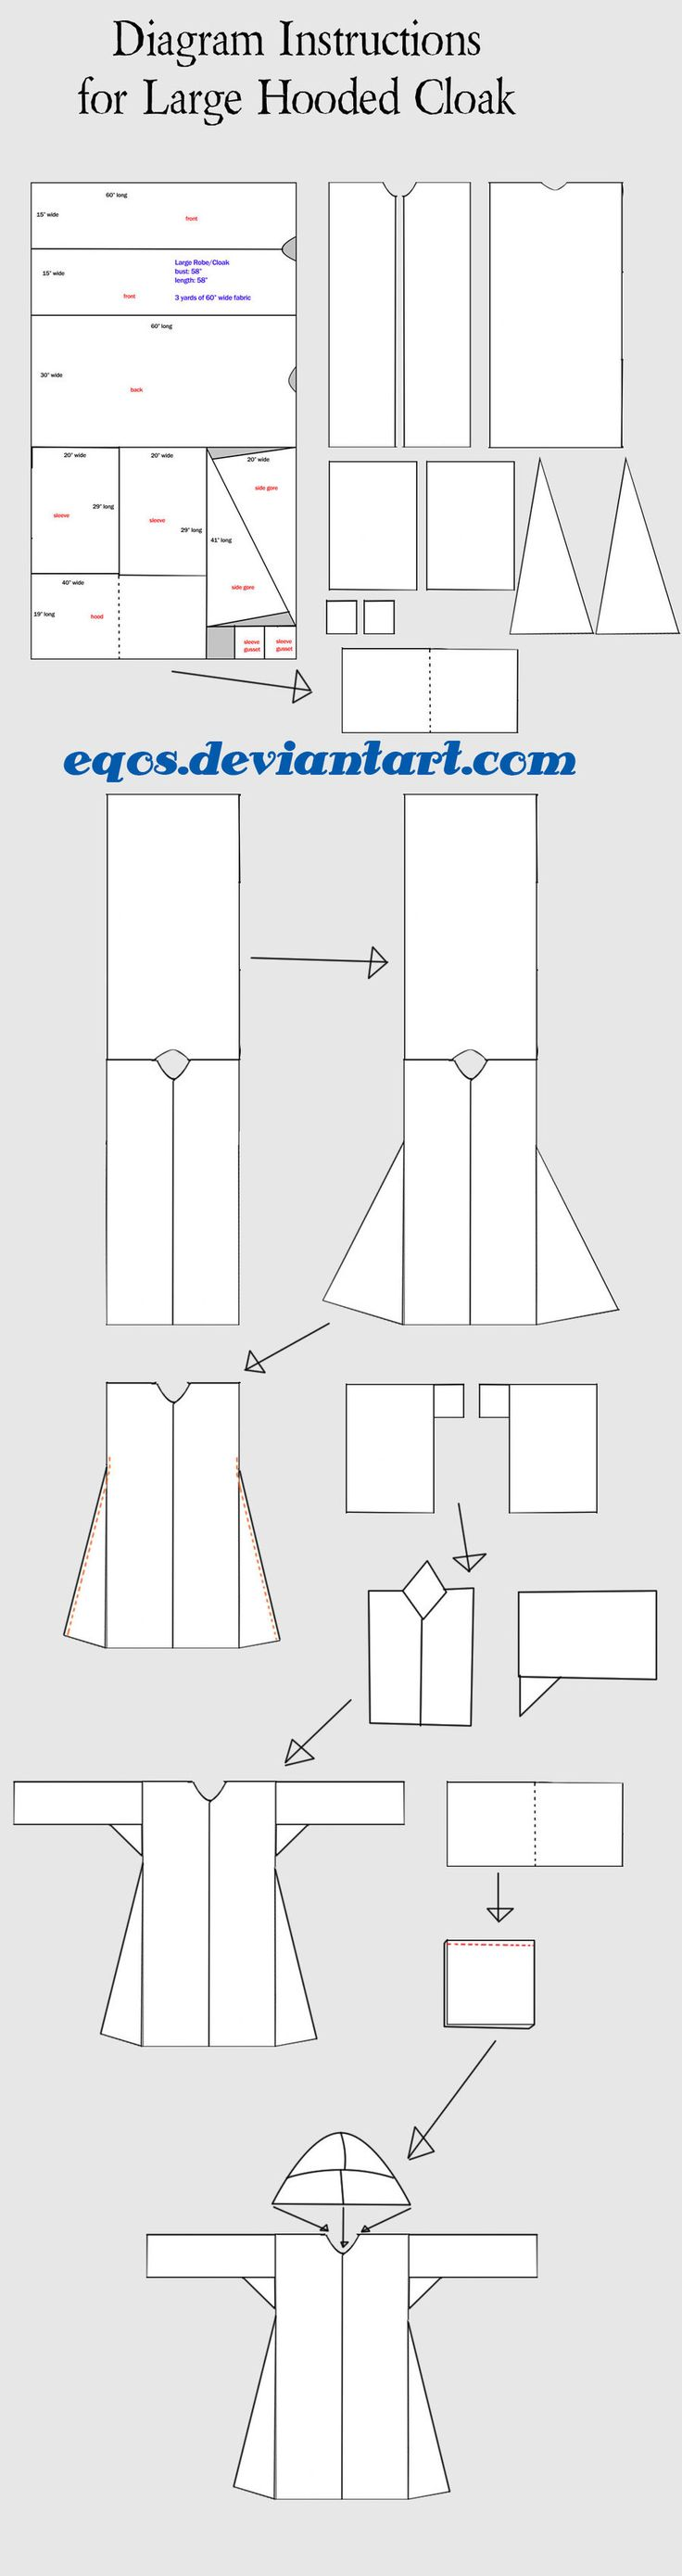 Diagram for Large Hooded Cloak by eqos.deviantart.com on @deviantART